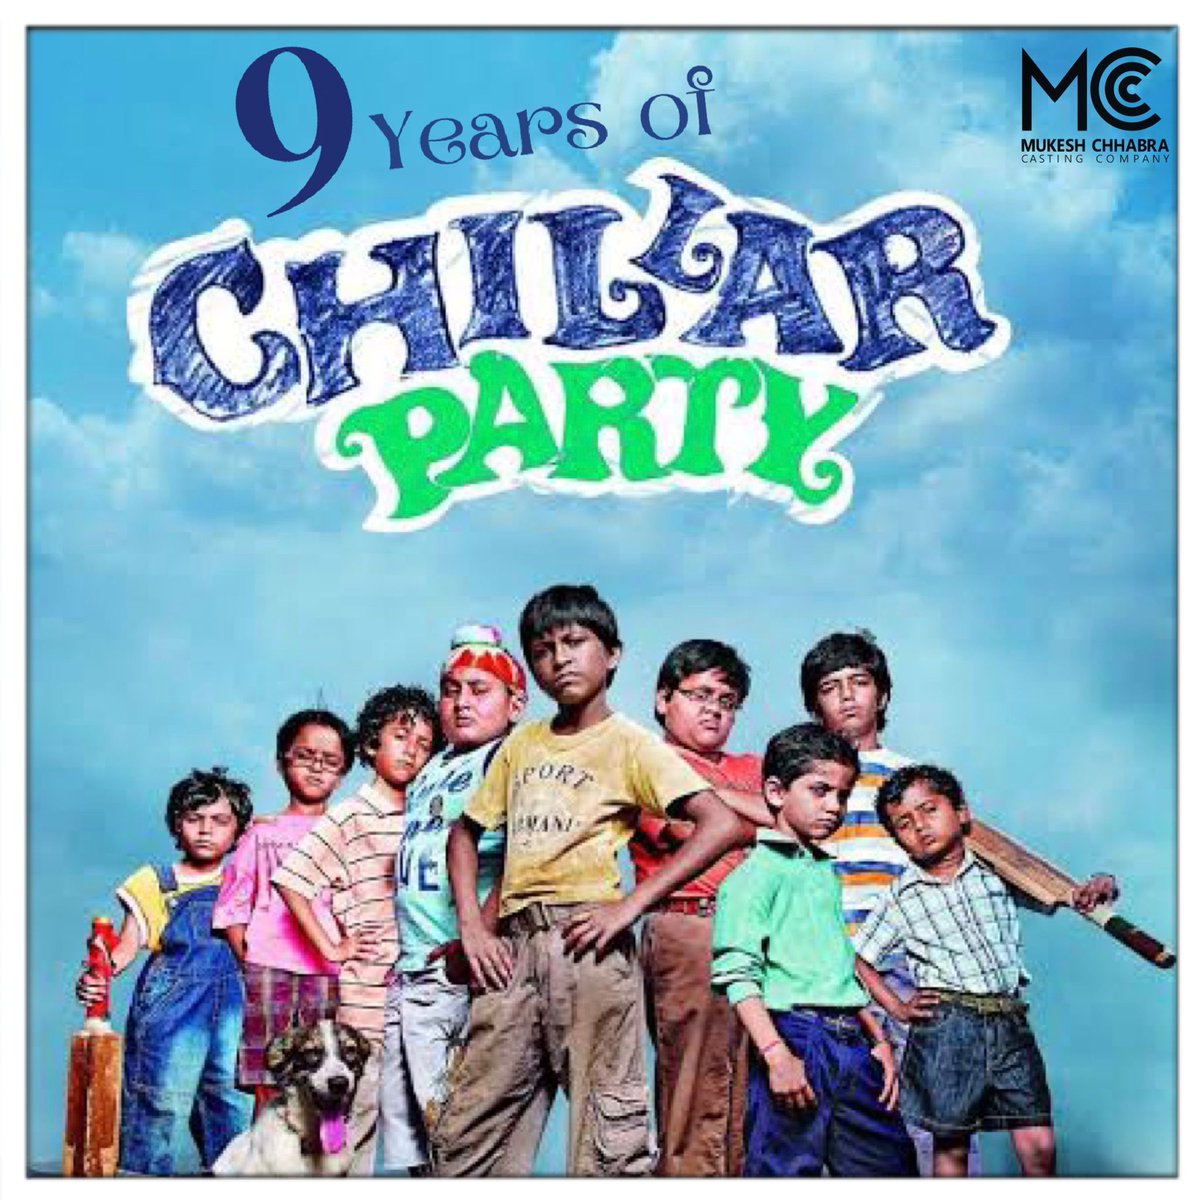 9 Years Of This Young STAR Kids Film #ChillarParty Which is Supported By @BeingSalmanKhan Because They Are #Nepotism Kids and This Movie is a Directorial Debut Of #VikasBahl & #NitishTiwari Who Made #Dangal #chichore #super30 #Queen Respectively https://t.co/wNbQVXJKNN